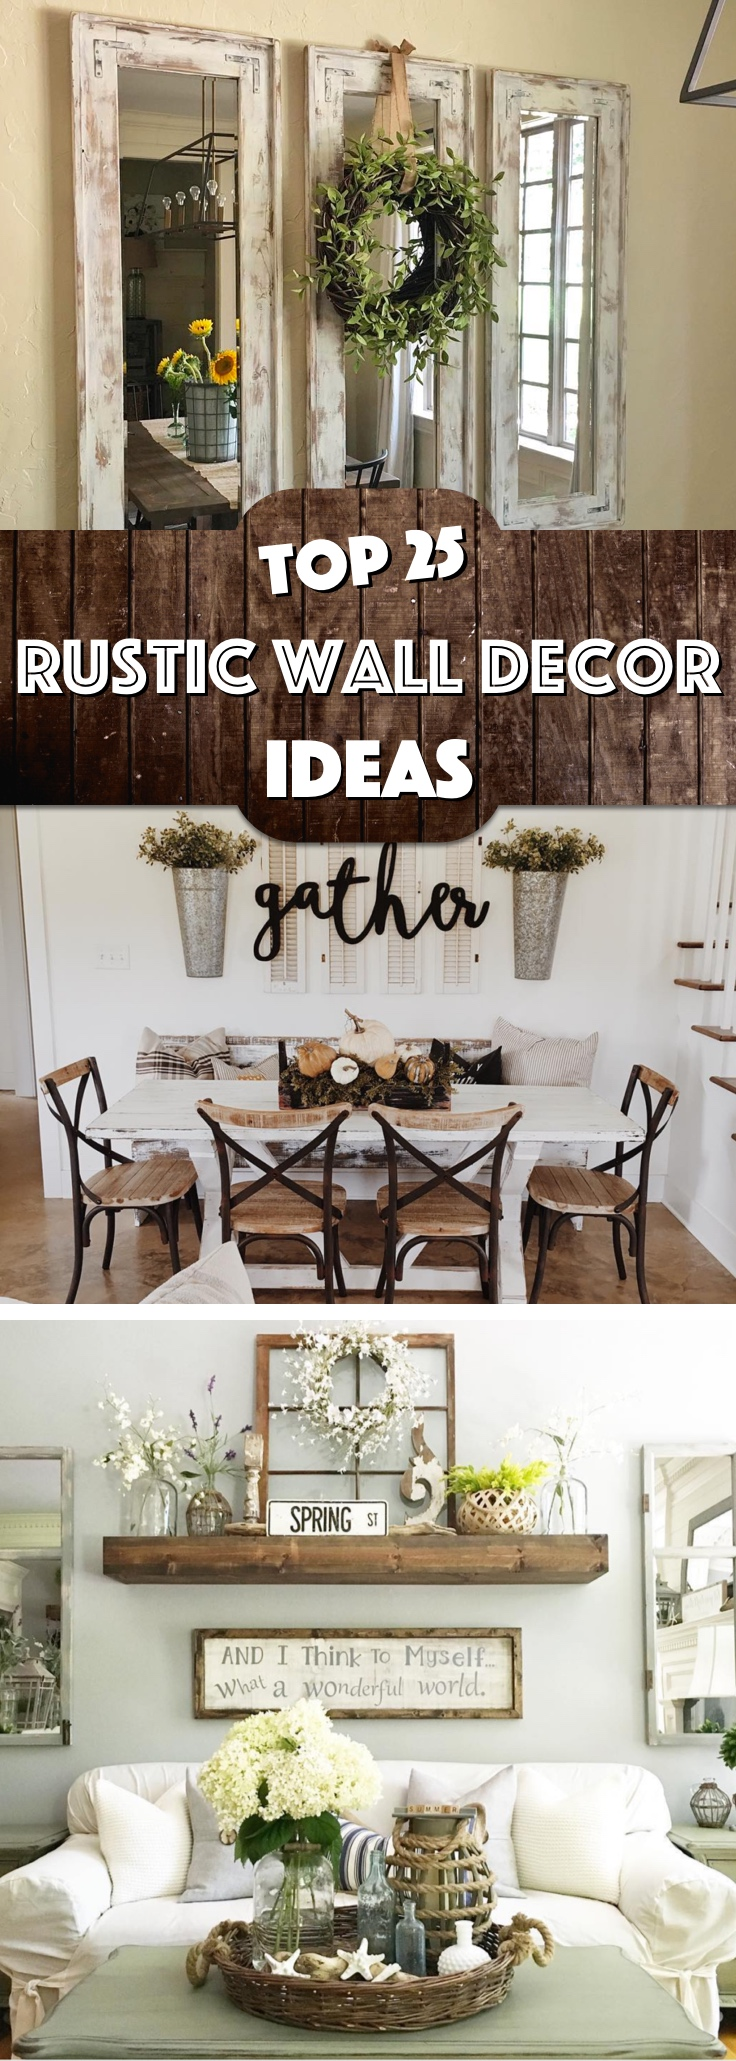 Must Try Rustic Wall Decor Ideas Featuring The Most Amazing Intended Imperfections